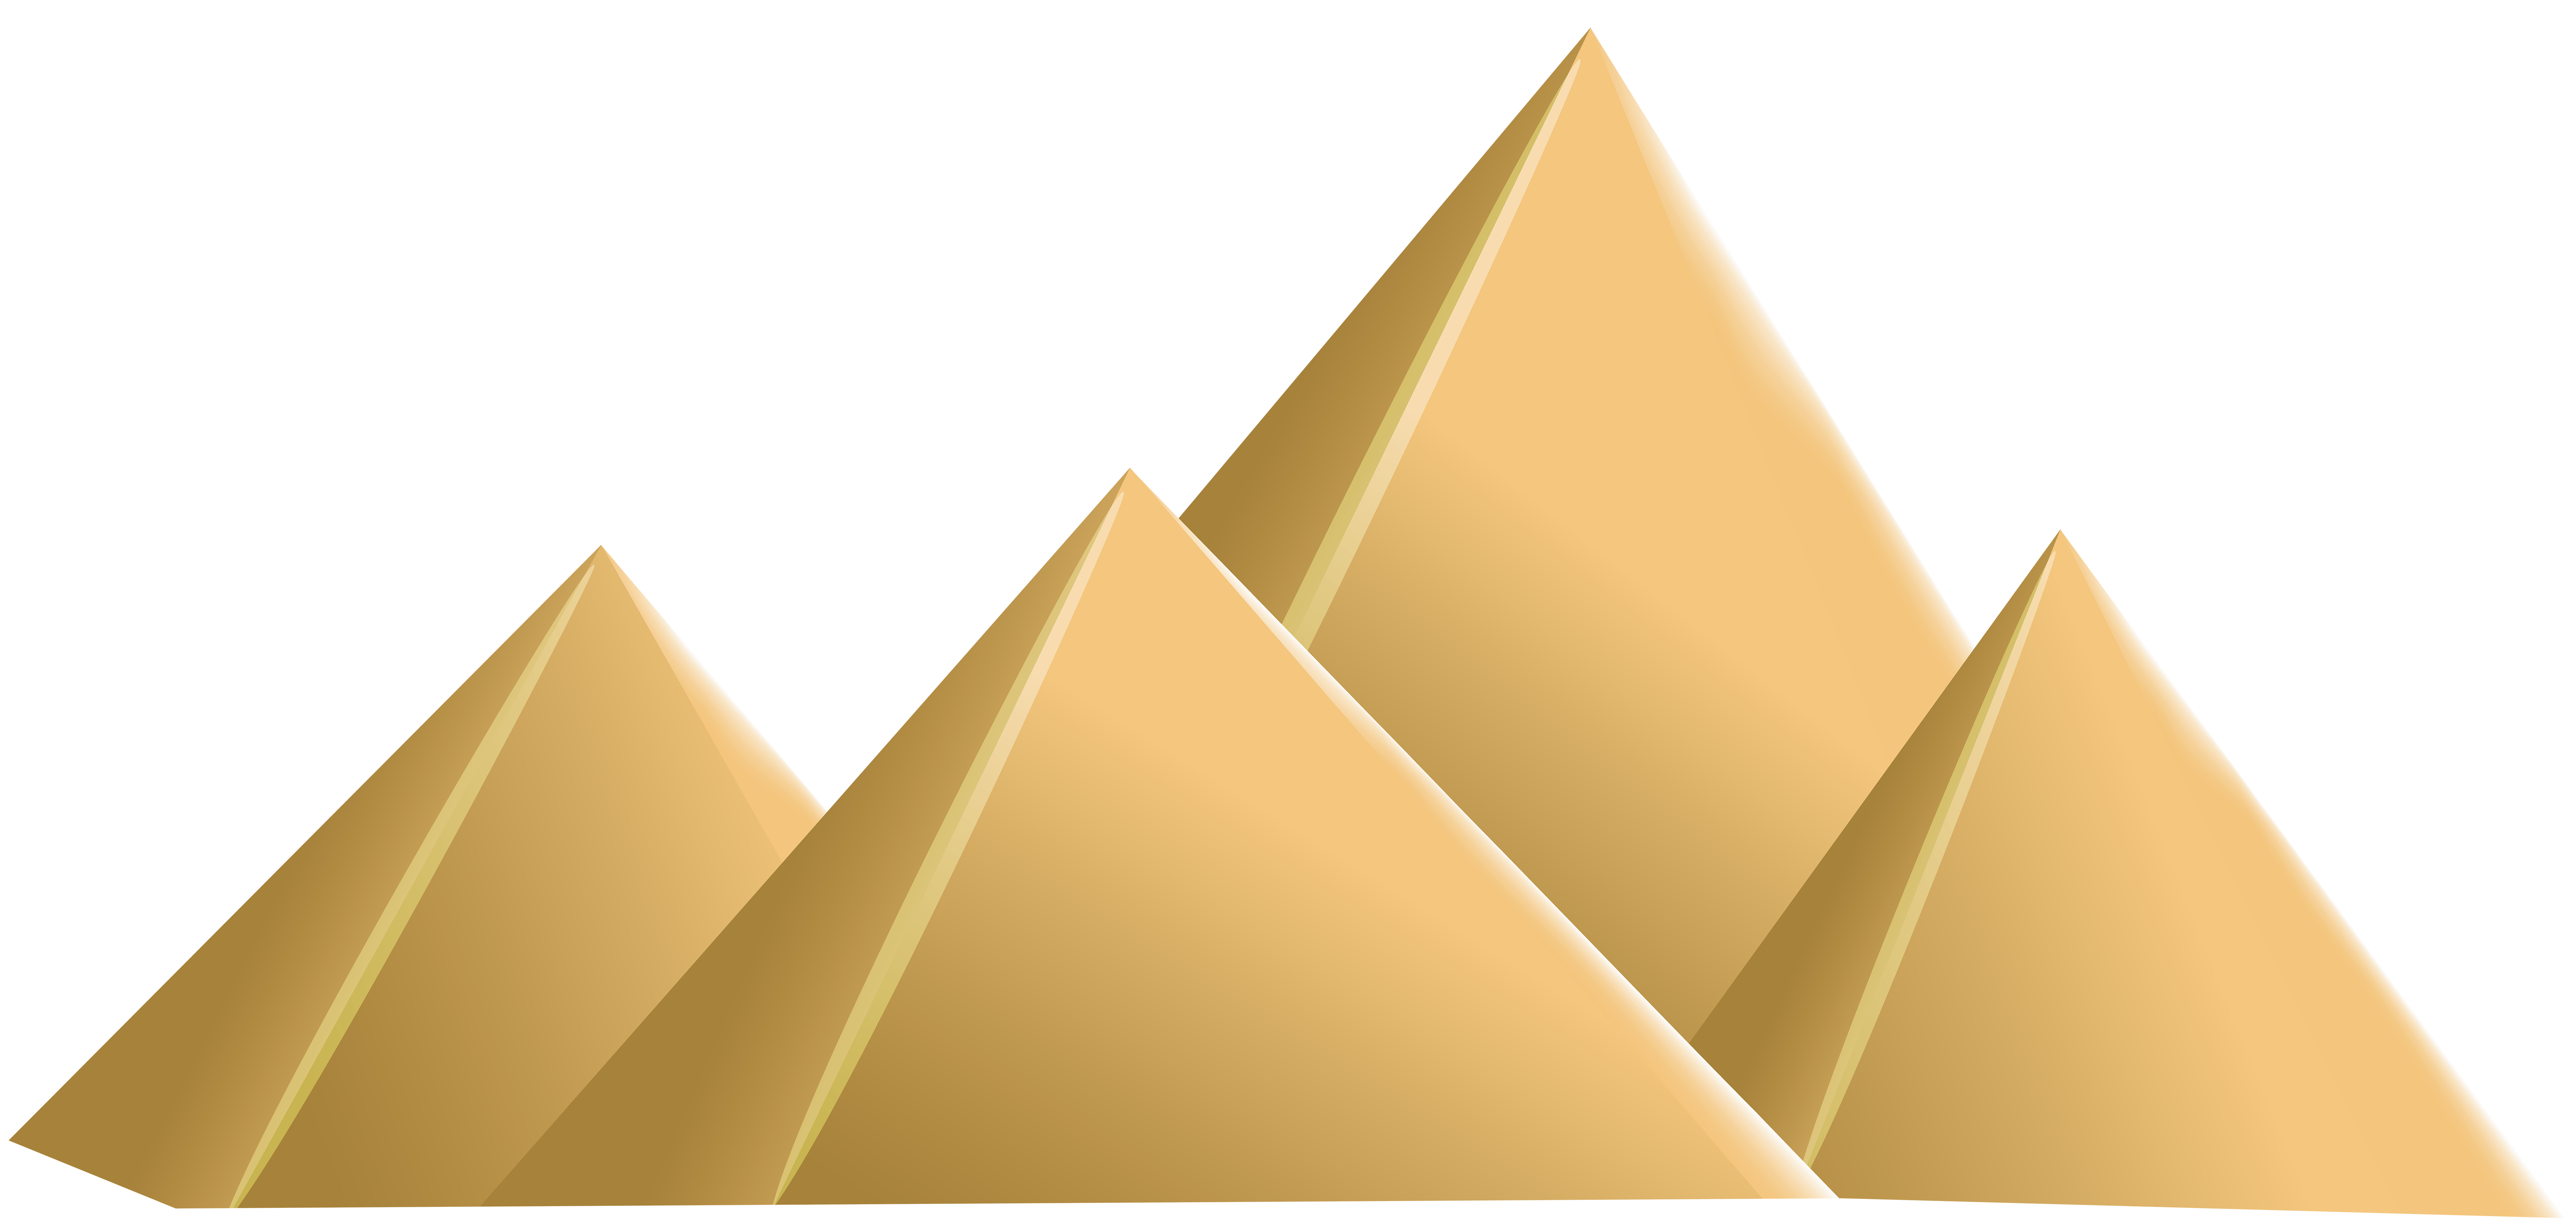 Egyptian png clip art. Pyramids clipart jpg royalty free download